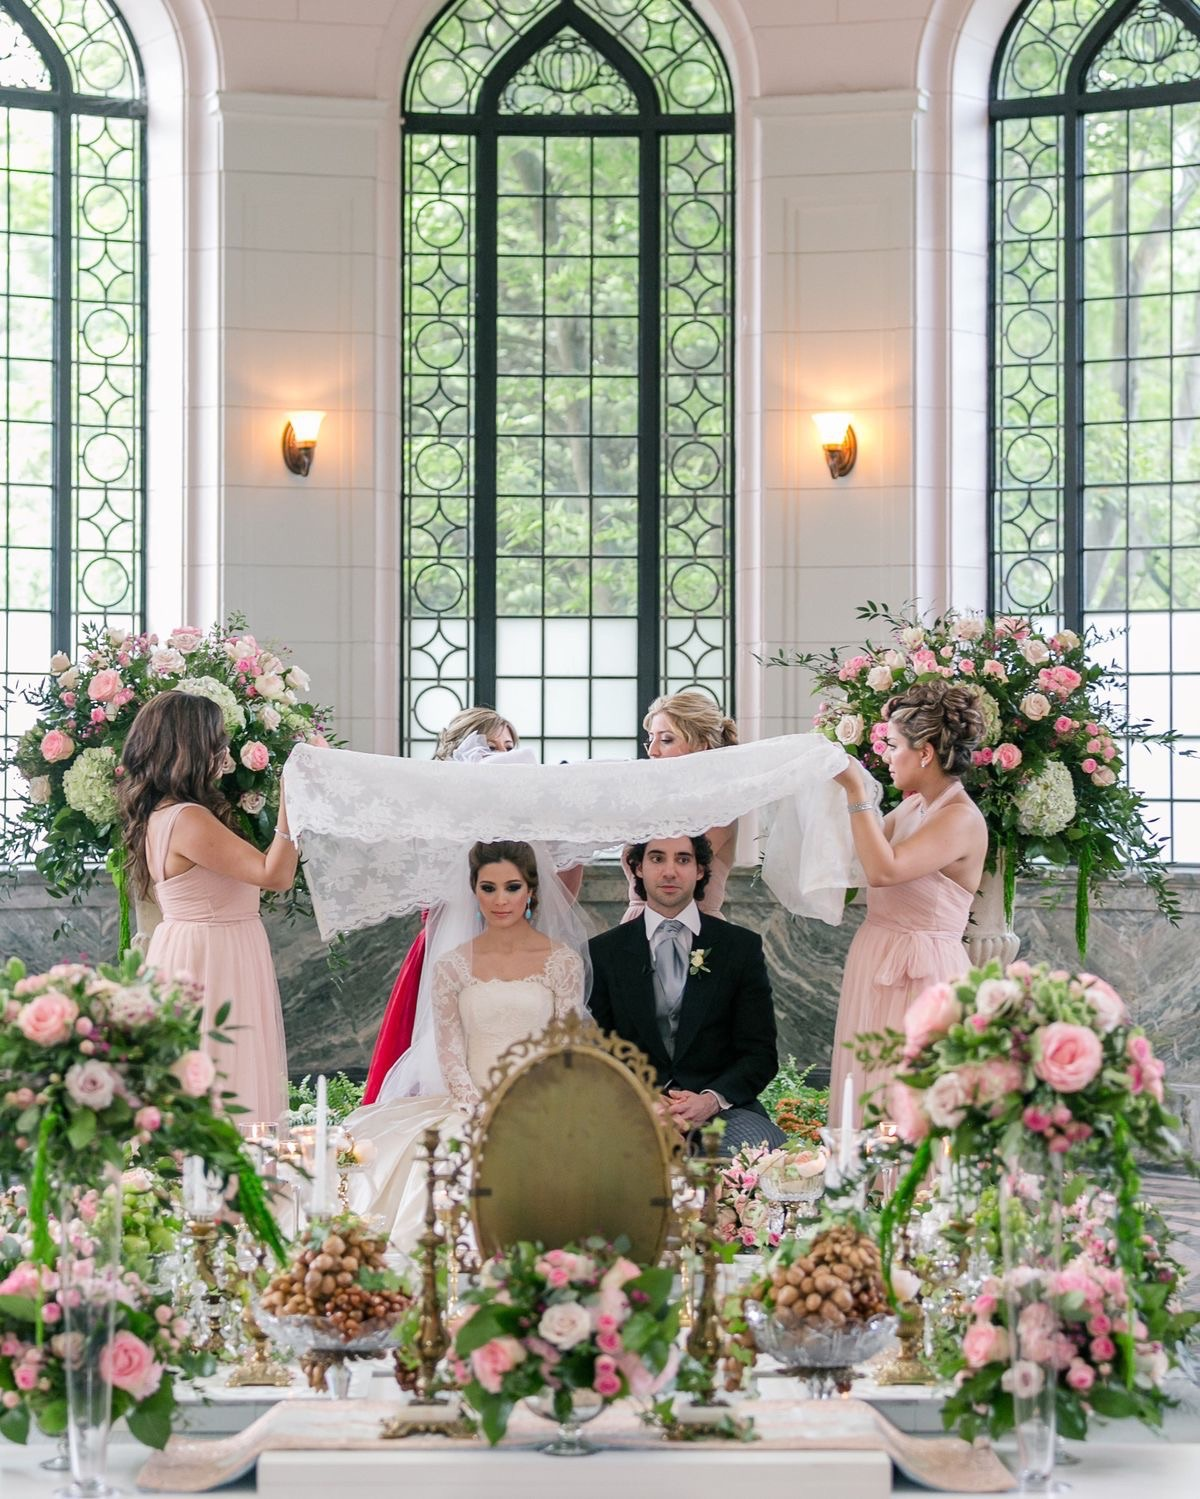 Persian Wedding: Turkey Wedding Destinations For